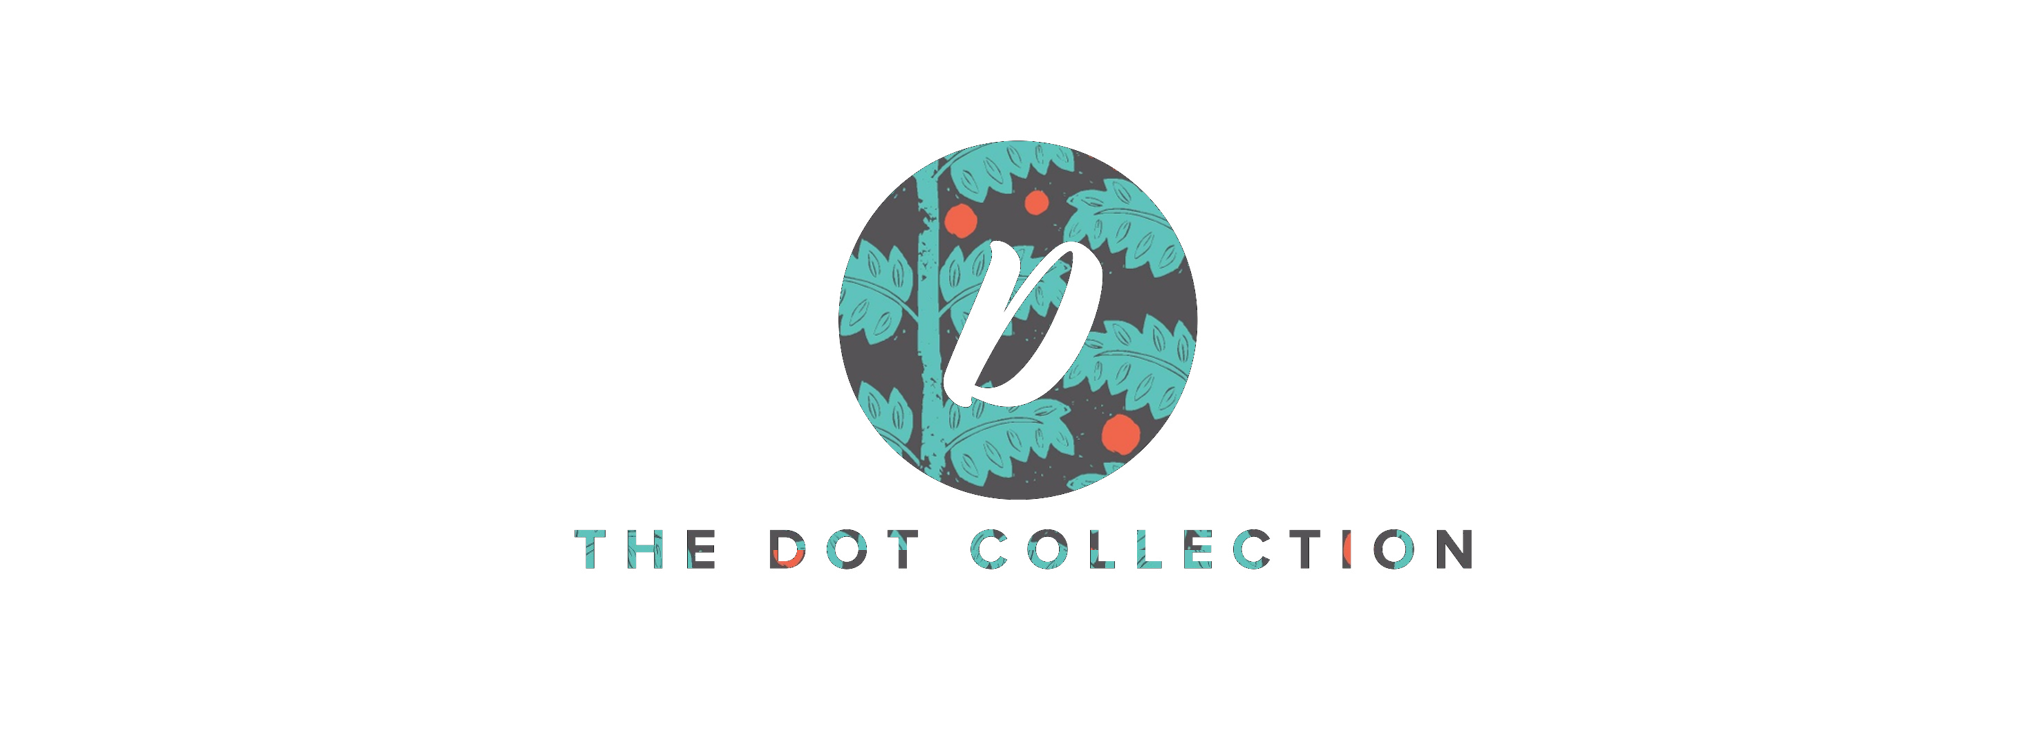 The Dot Collection logo